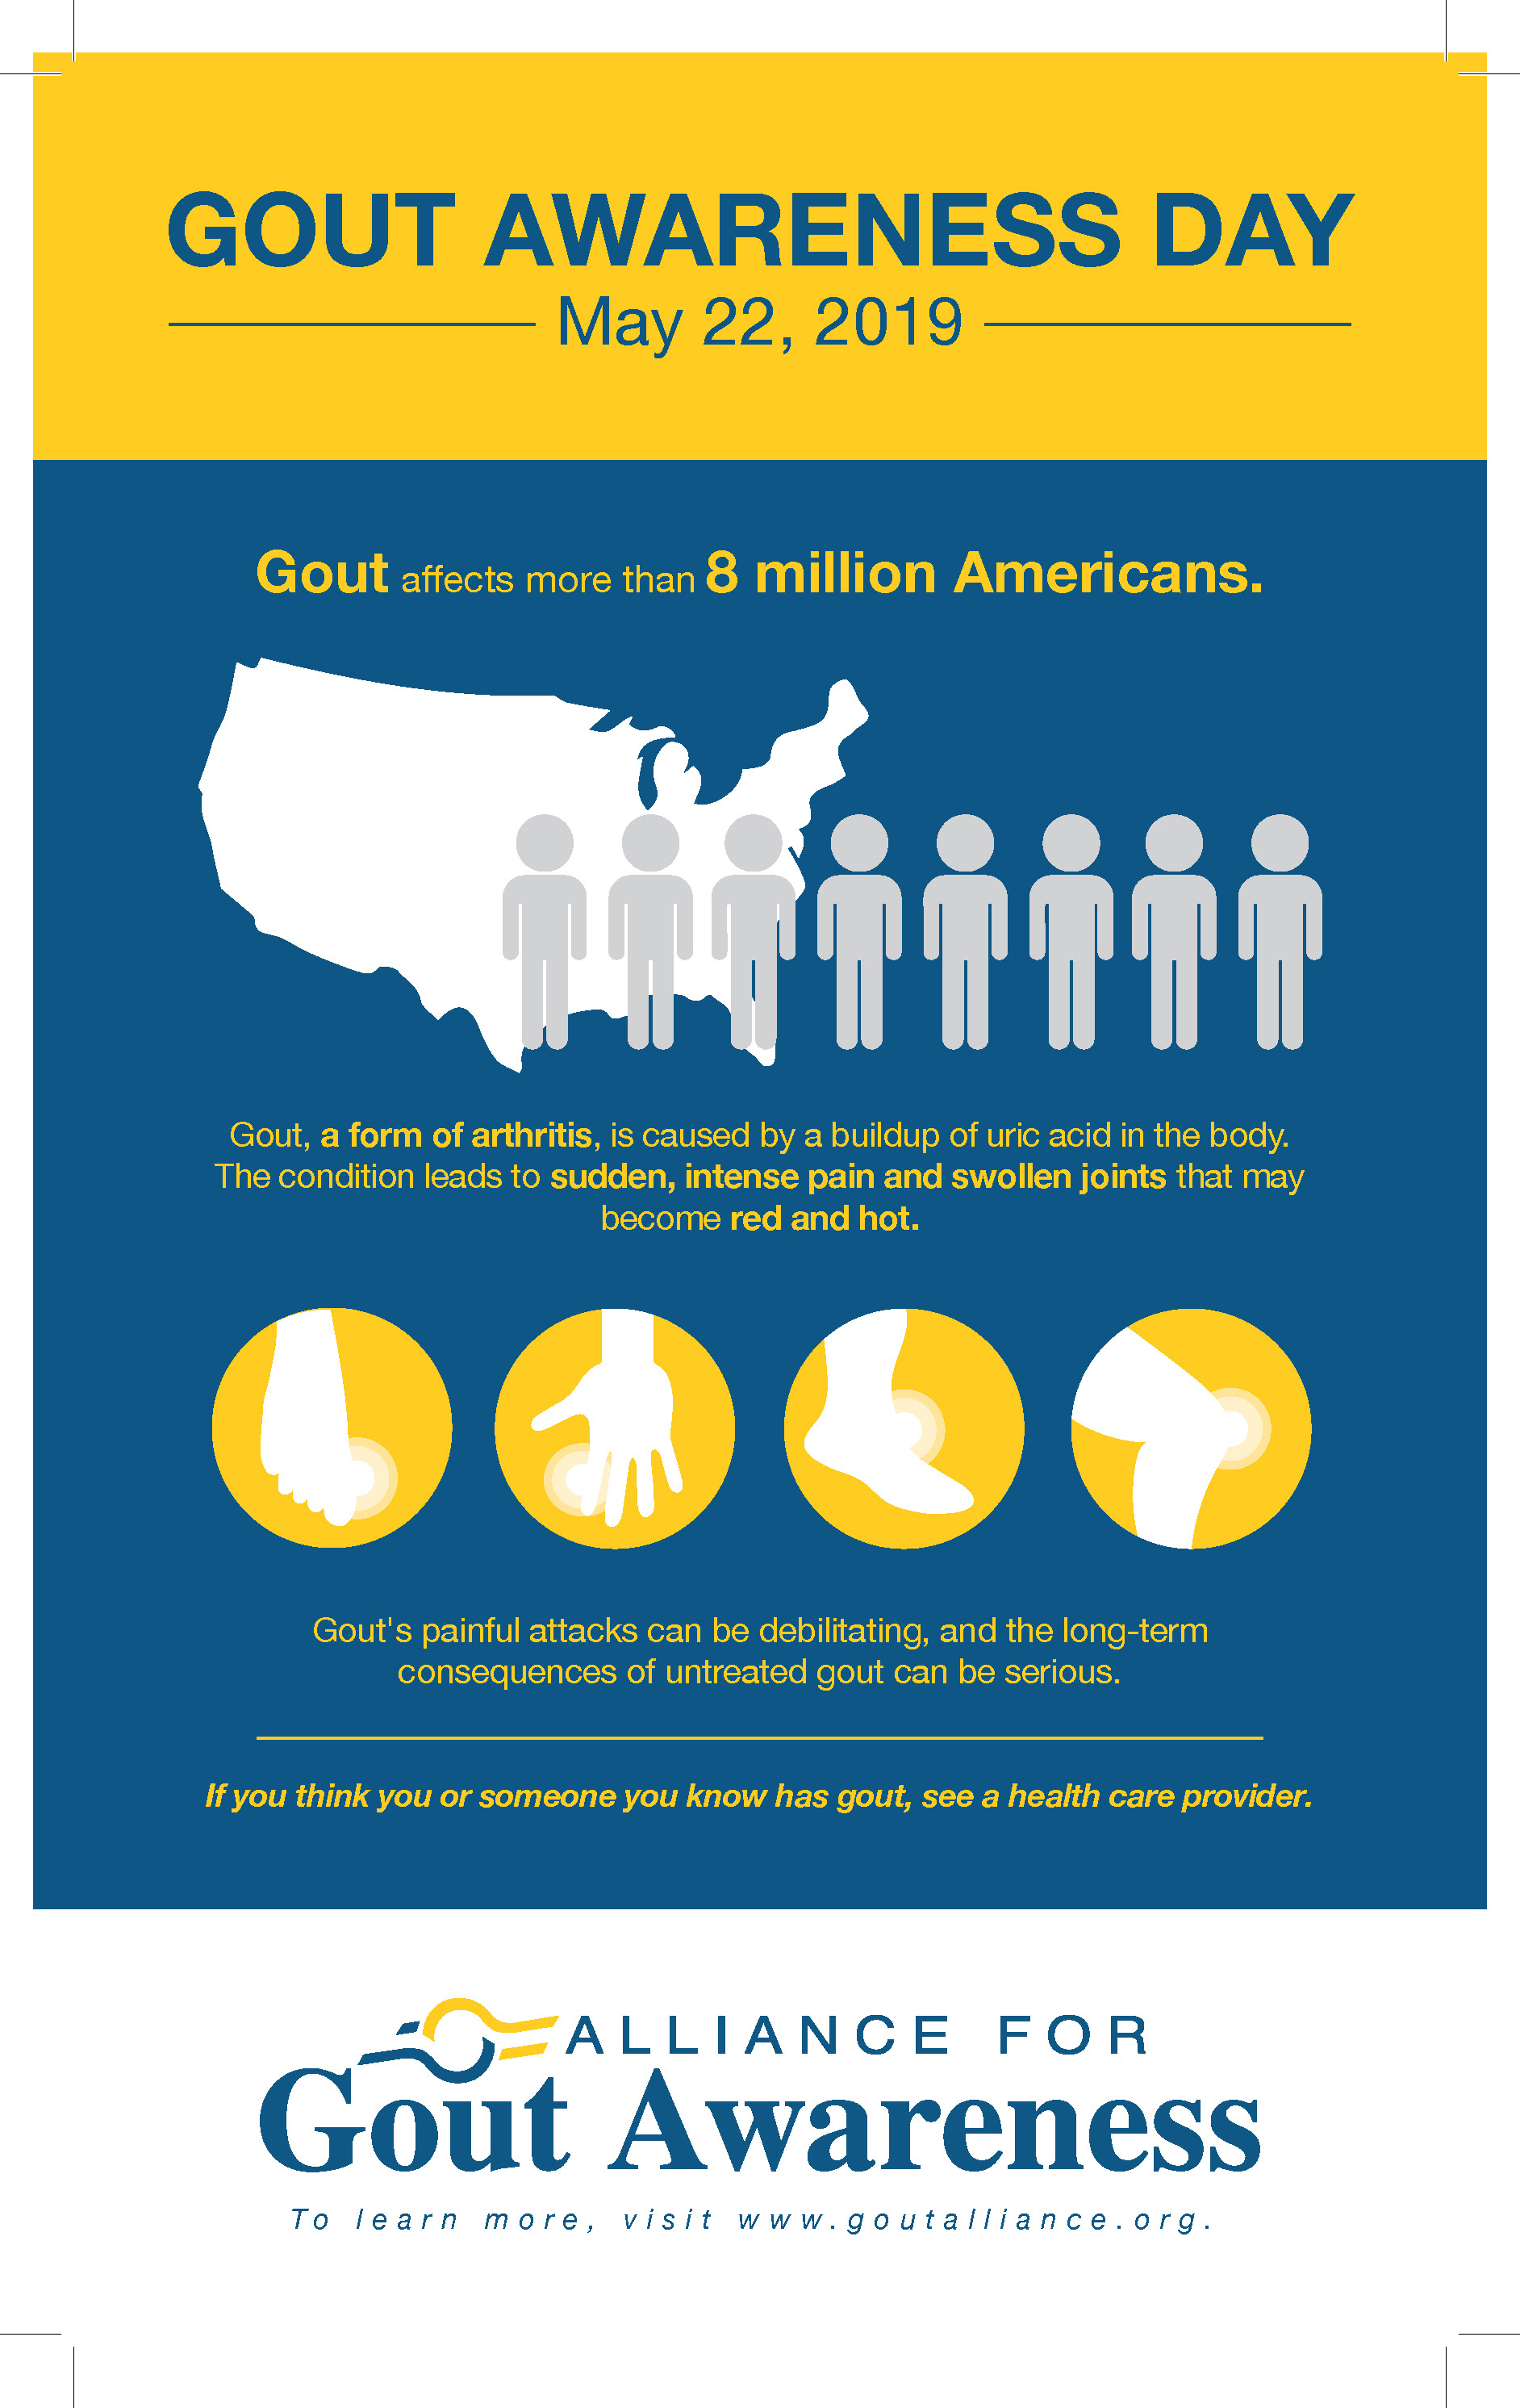 gout-awareness-day-graphic-legal.jpg